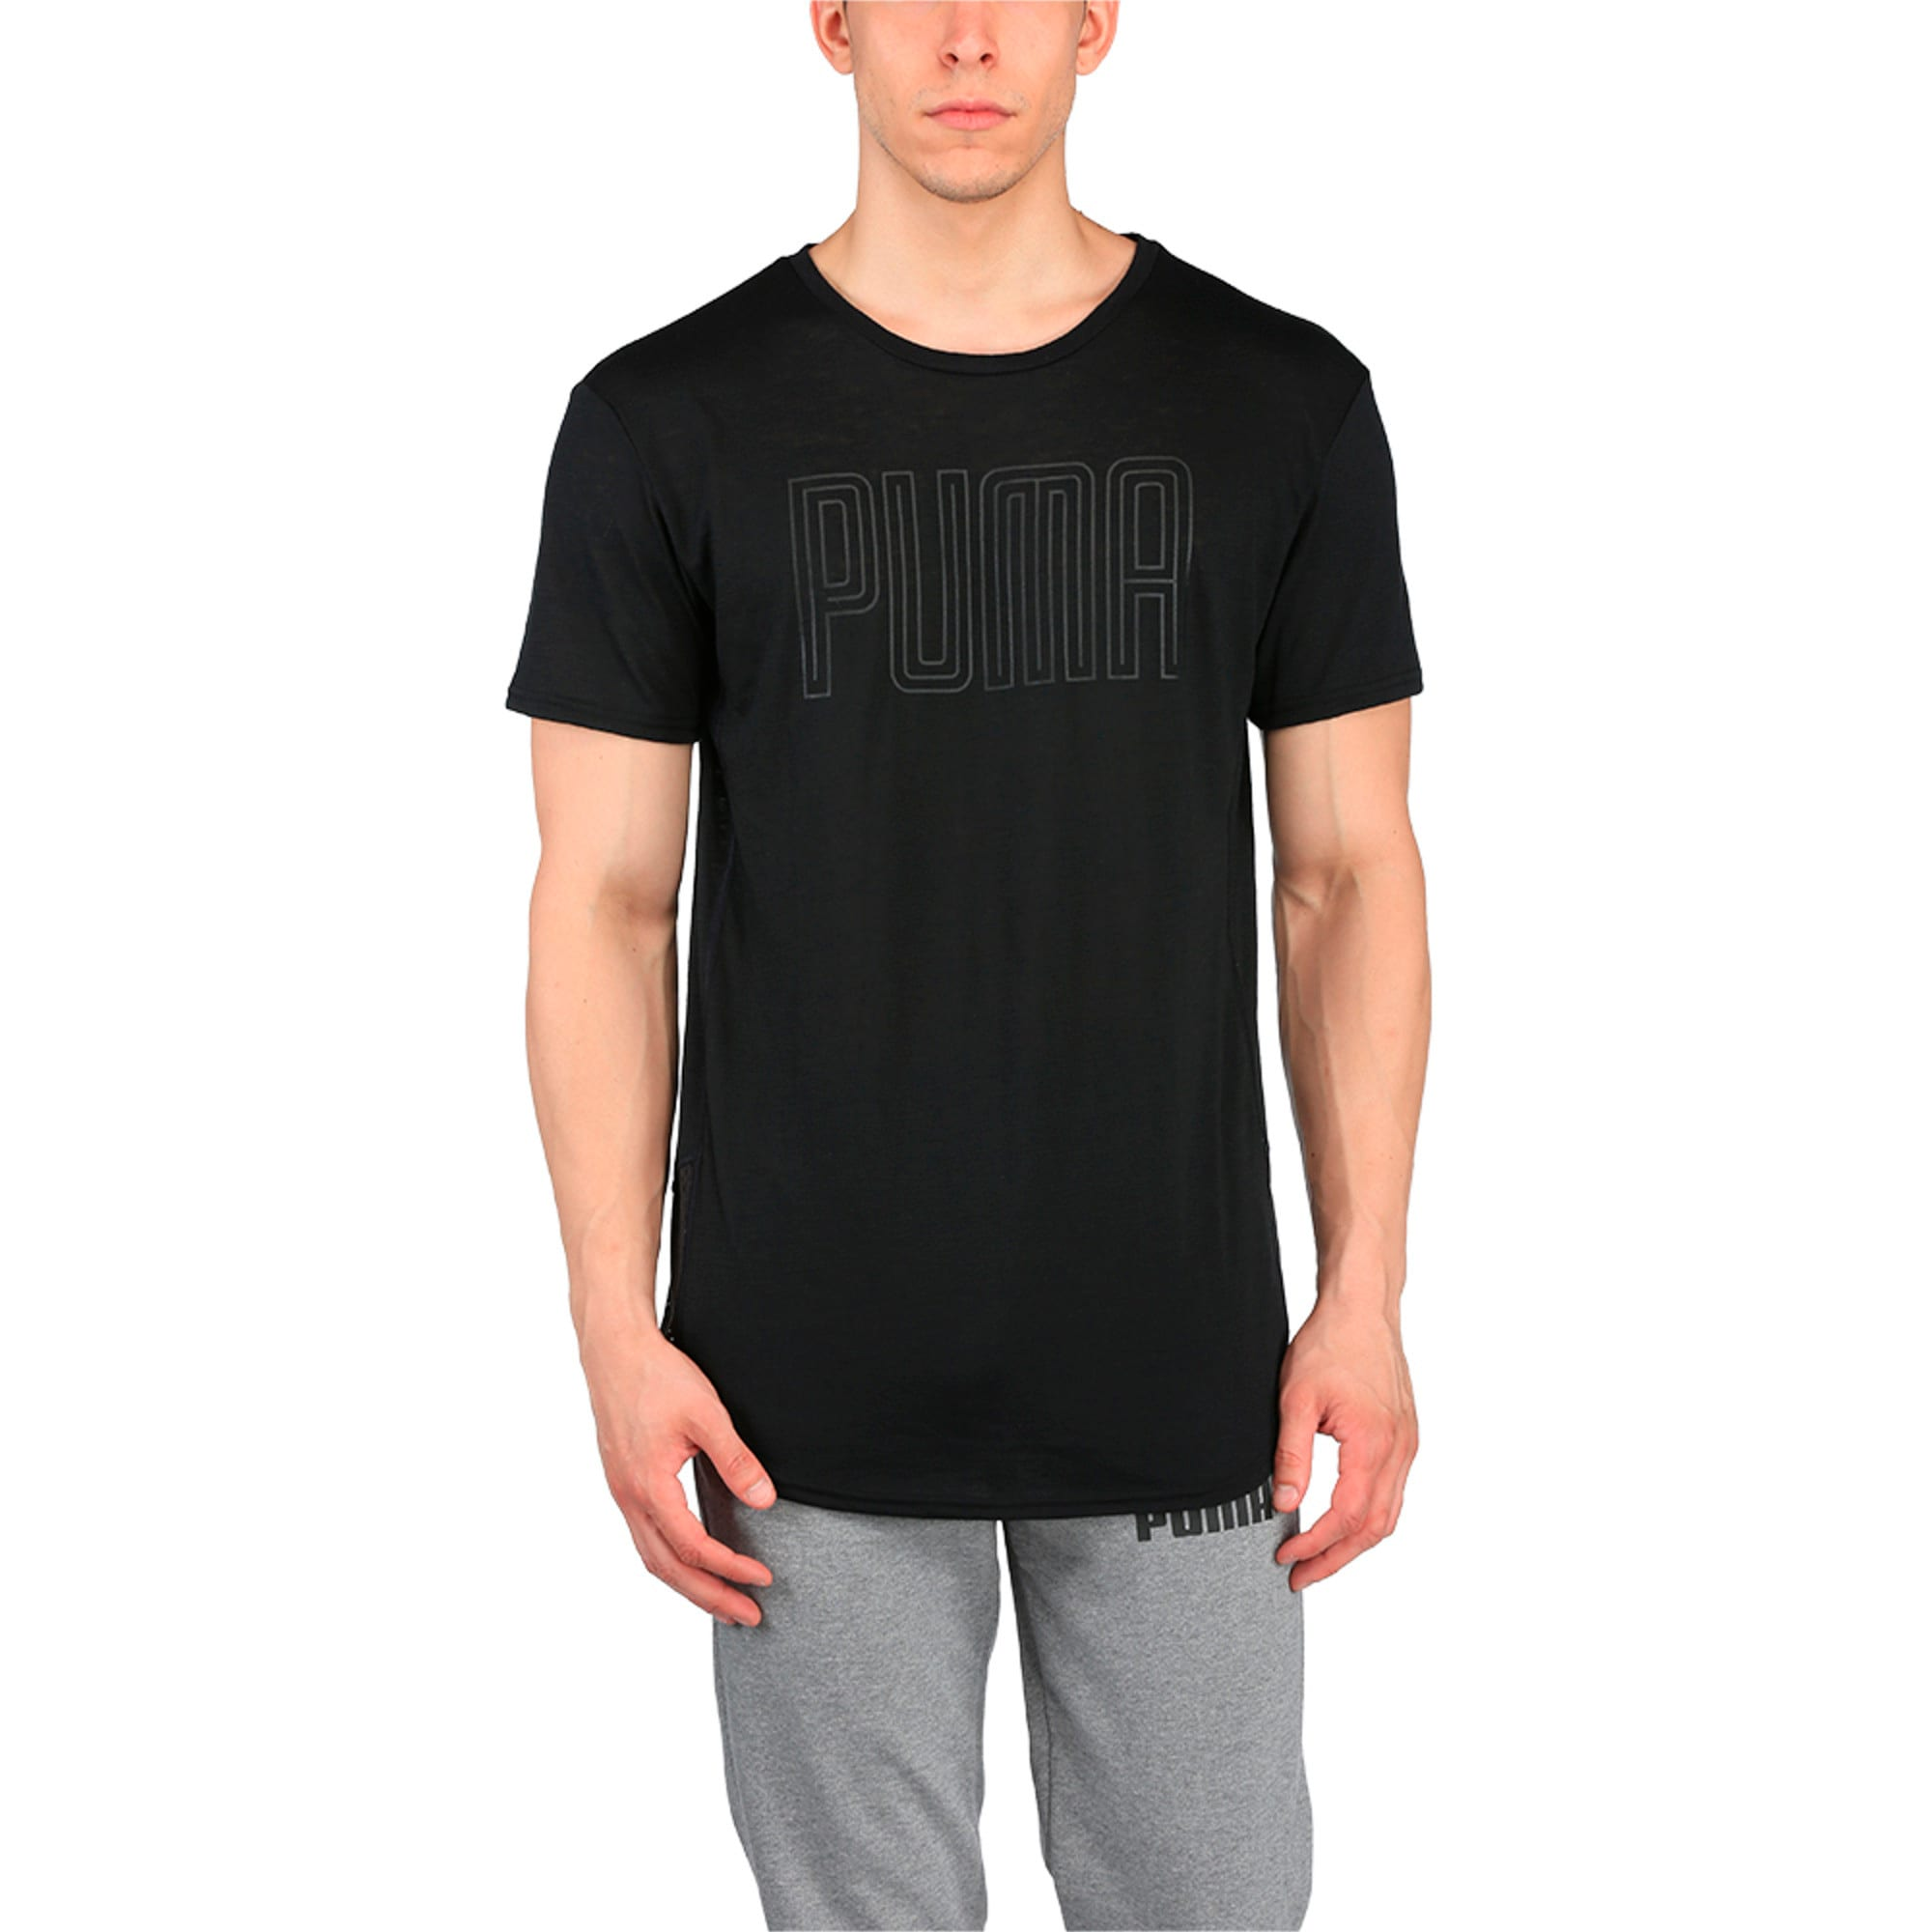 Thumbnail 1 of Active Training Men's Dri-Release® Novelty Graphic T-Shirt, Puma Black Heather, medium-IND